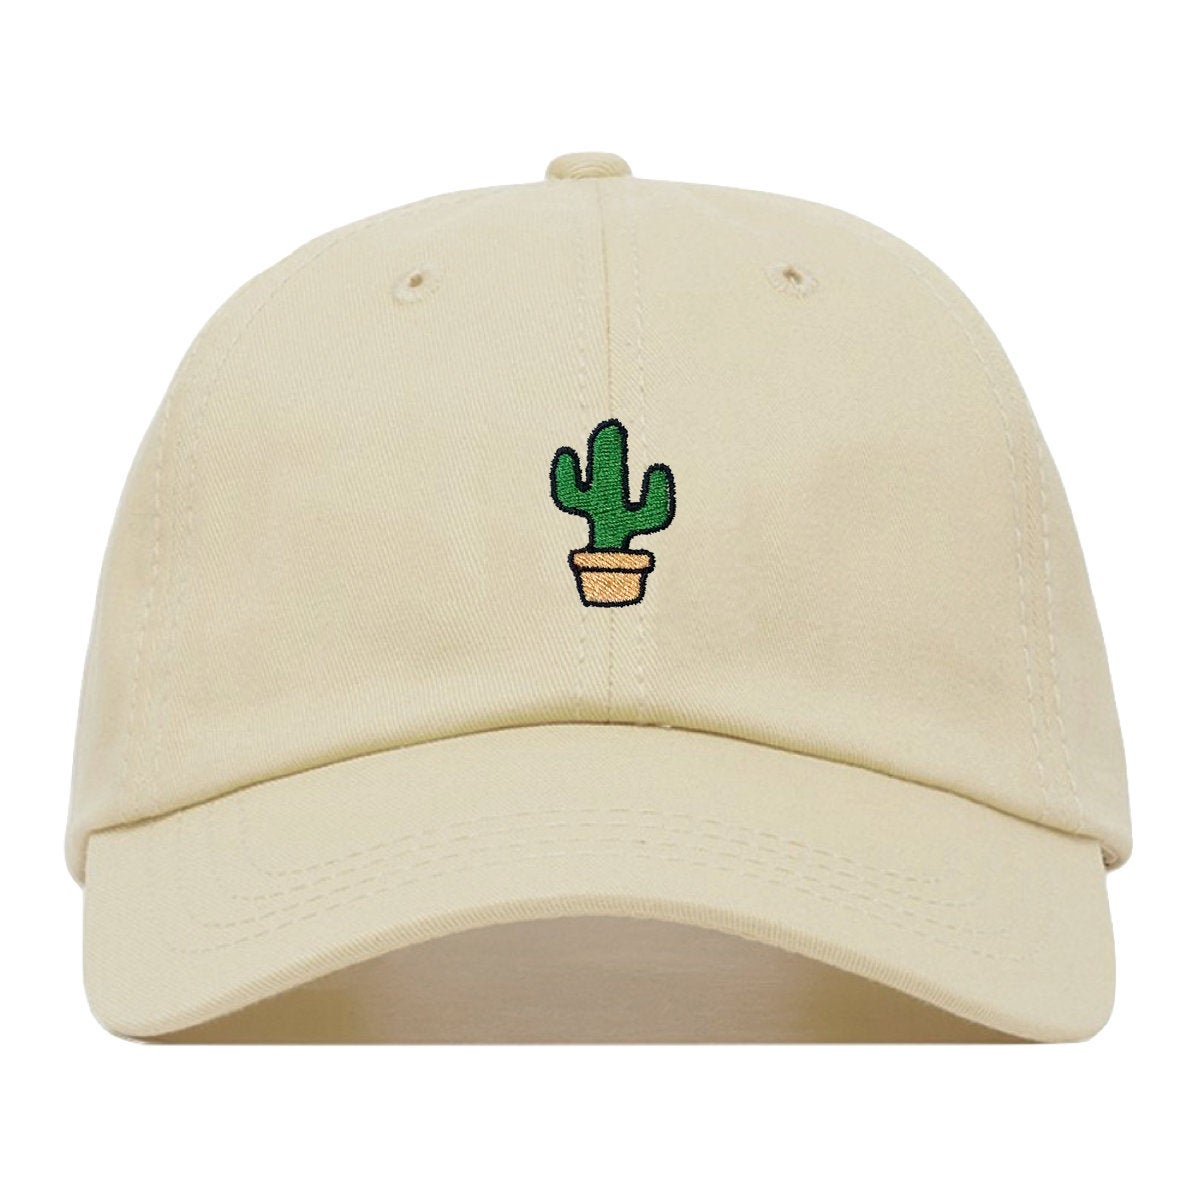 2019 new cactus embroidery   baseball     cap   fashion couple hat summer breathable sports   caps   outdoor dad hats